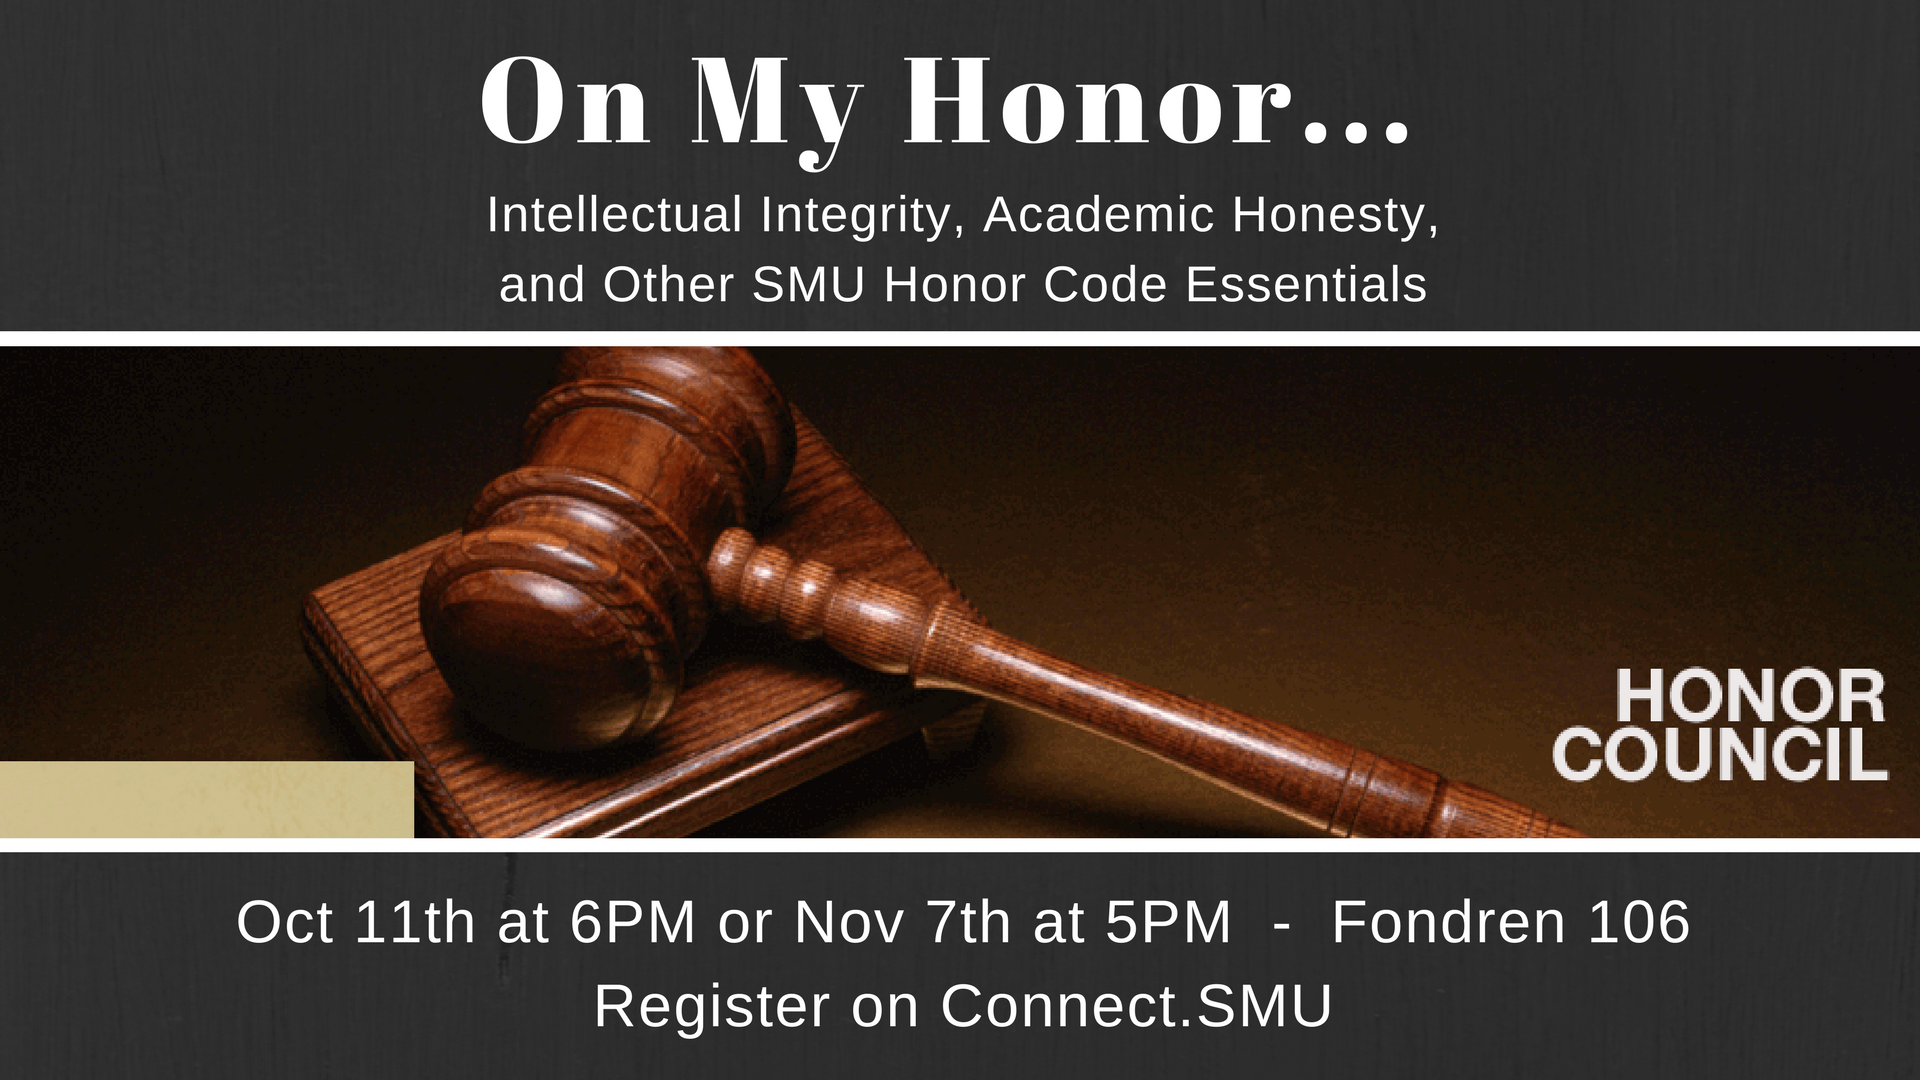 On My Honor: Intellectual Integrity, Academic Honesty, and Other SMU Honor Code Essentials